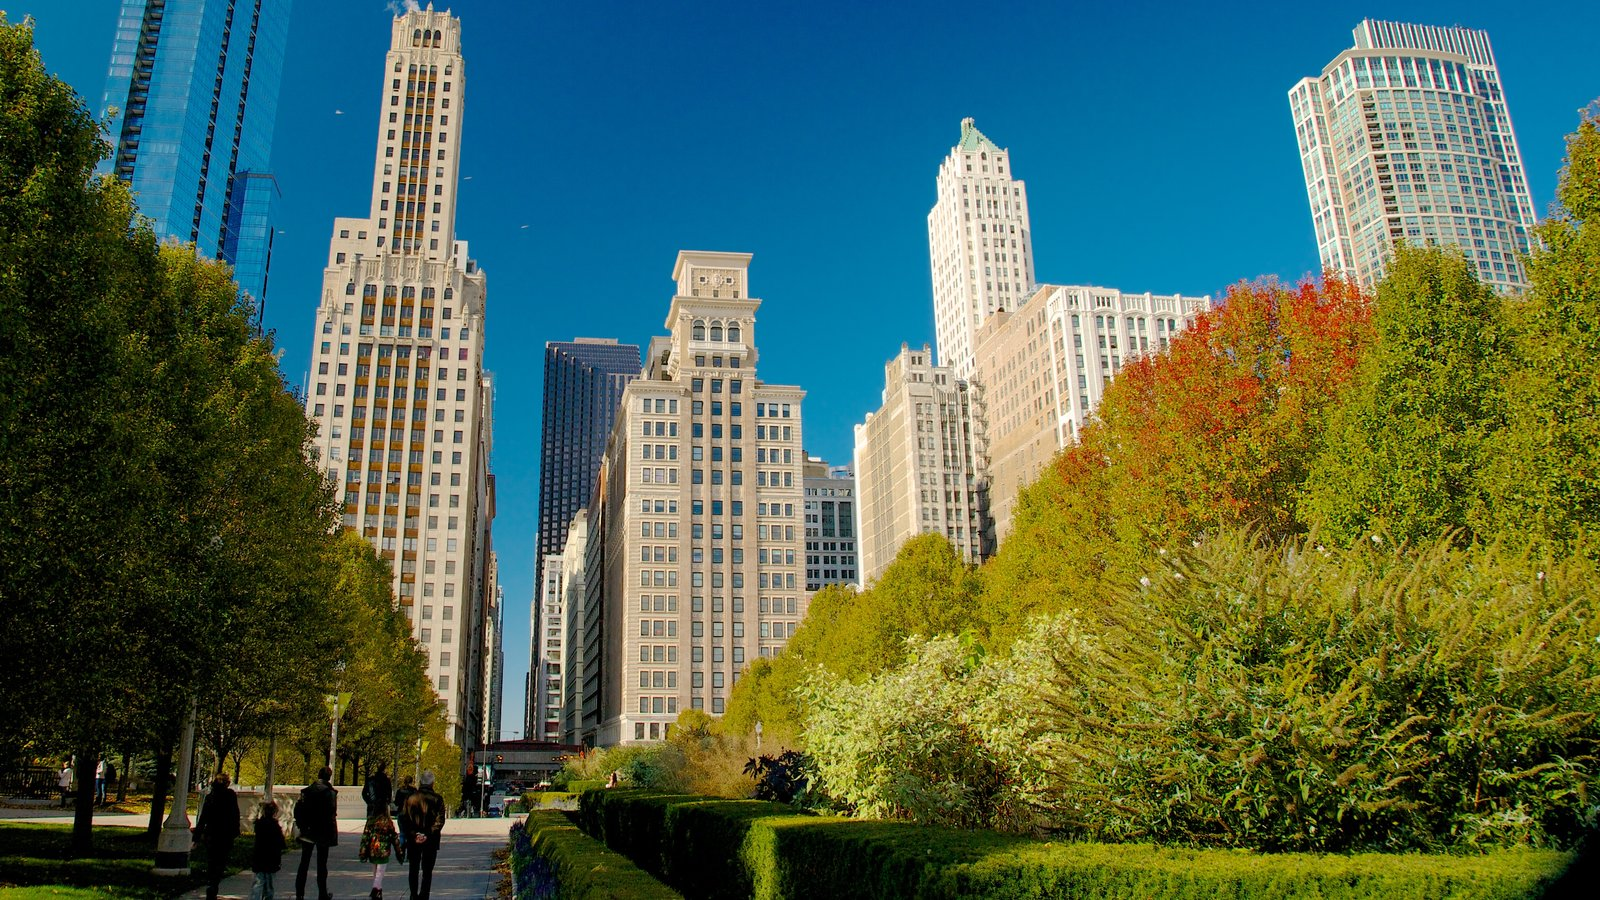 Millennium Park showing a city, a high rise building and a garden